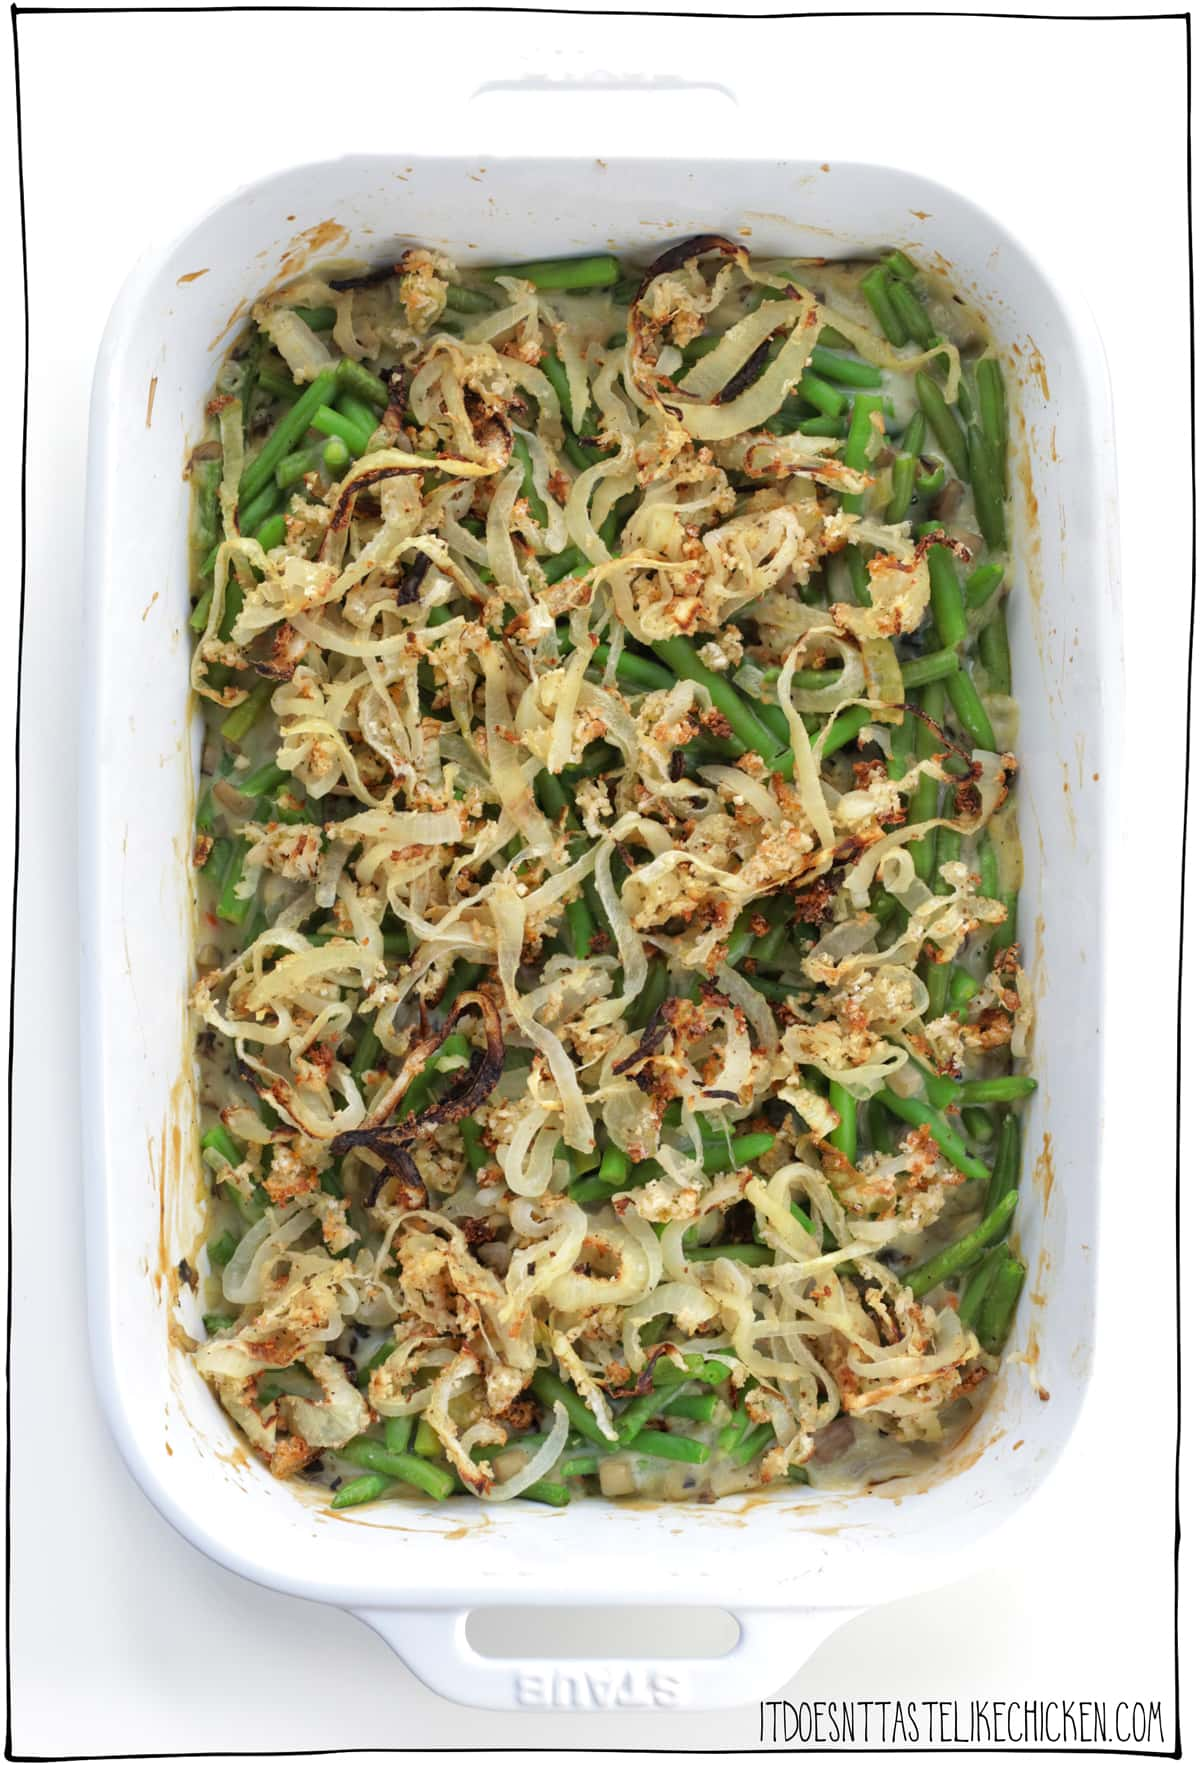 Vegan Green Bean Casserole! Easy to make, can be prepared ahead of time and then baked fresh, it's way healthier than the traditional version, (it can even be made gluten-free and oil-free if you wish!) and of course it's the absolute BEST side dish for your holiday or Thanksgiving feast! #itdoesnttastelikechicken #veganrecipes #veganthanksgiving